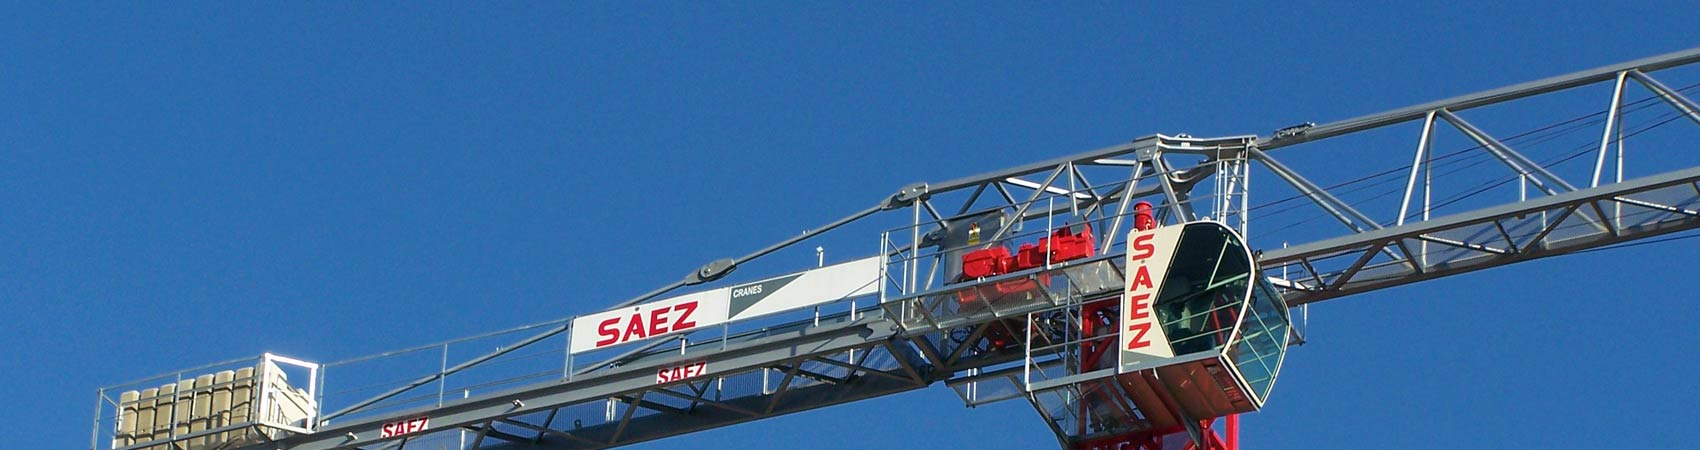 Saez Exclusive in Lombardy